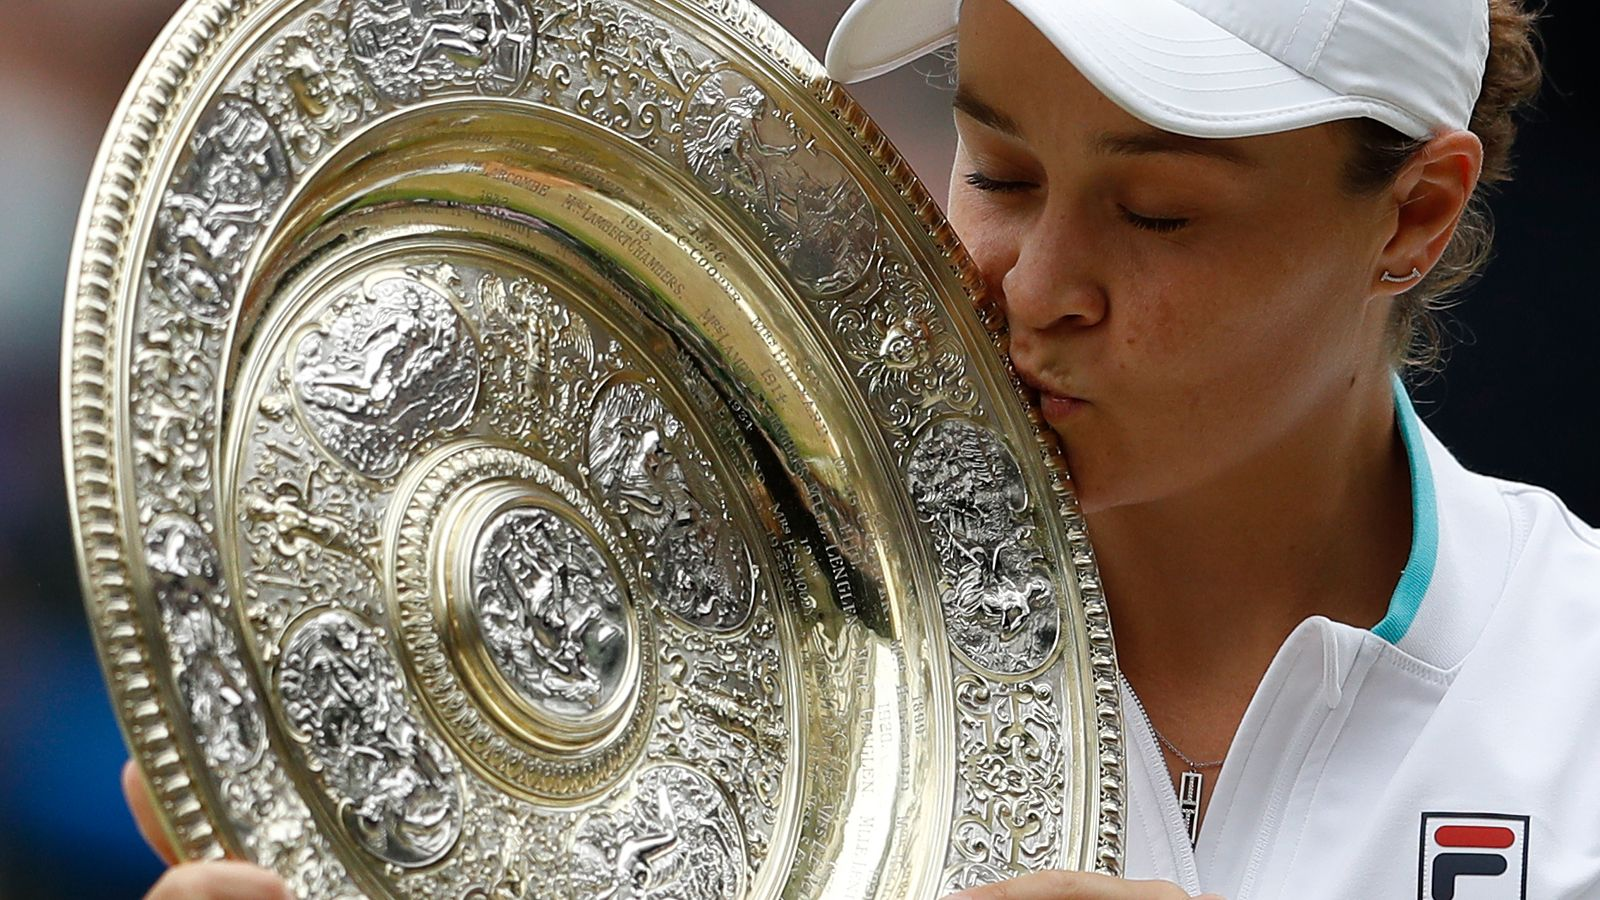 Wimbledon 2021: Ashleigh Barty is an Australian inspiration, following in the footsteps of Evonne Goolagong-Cawley